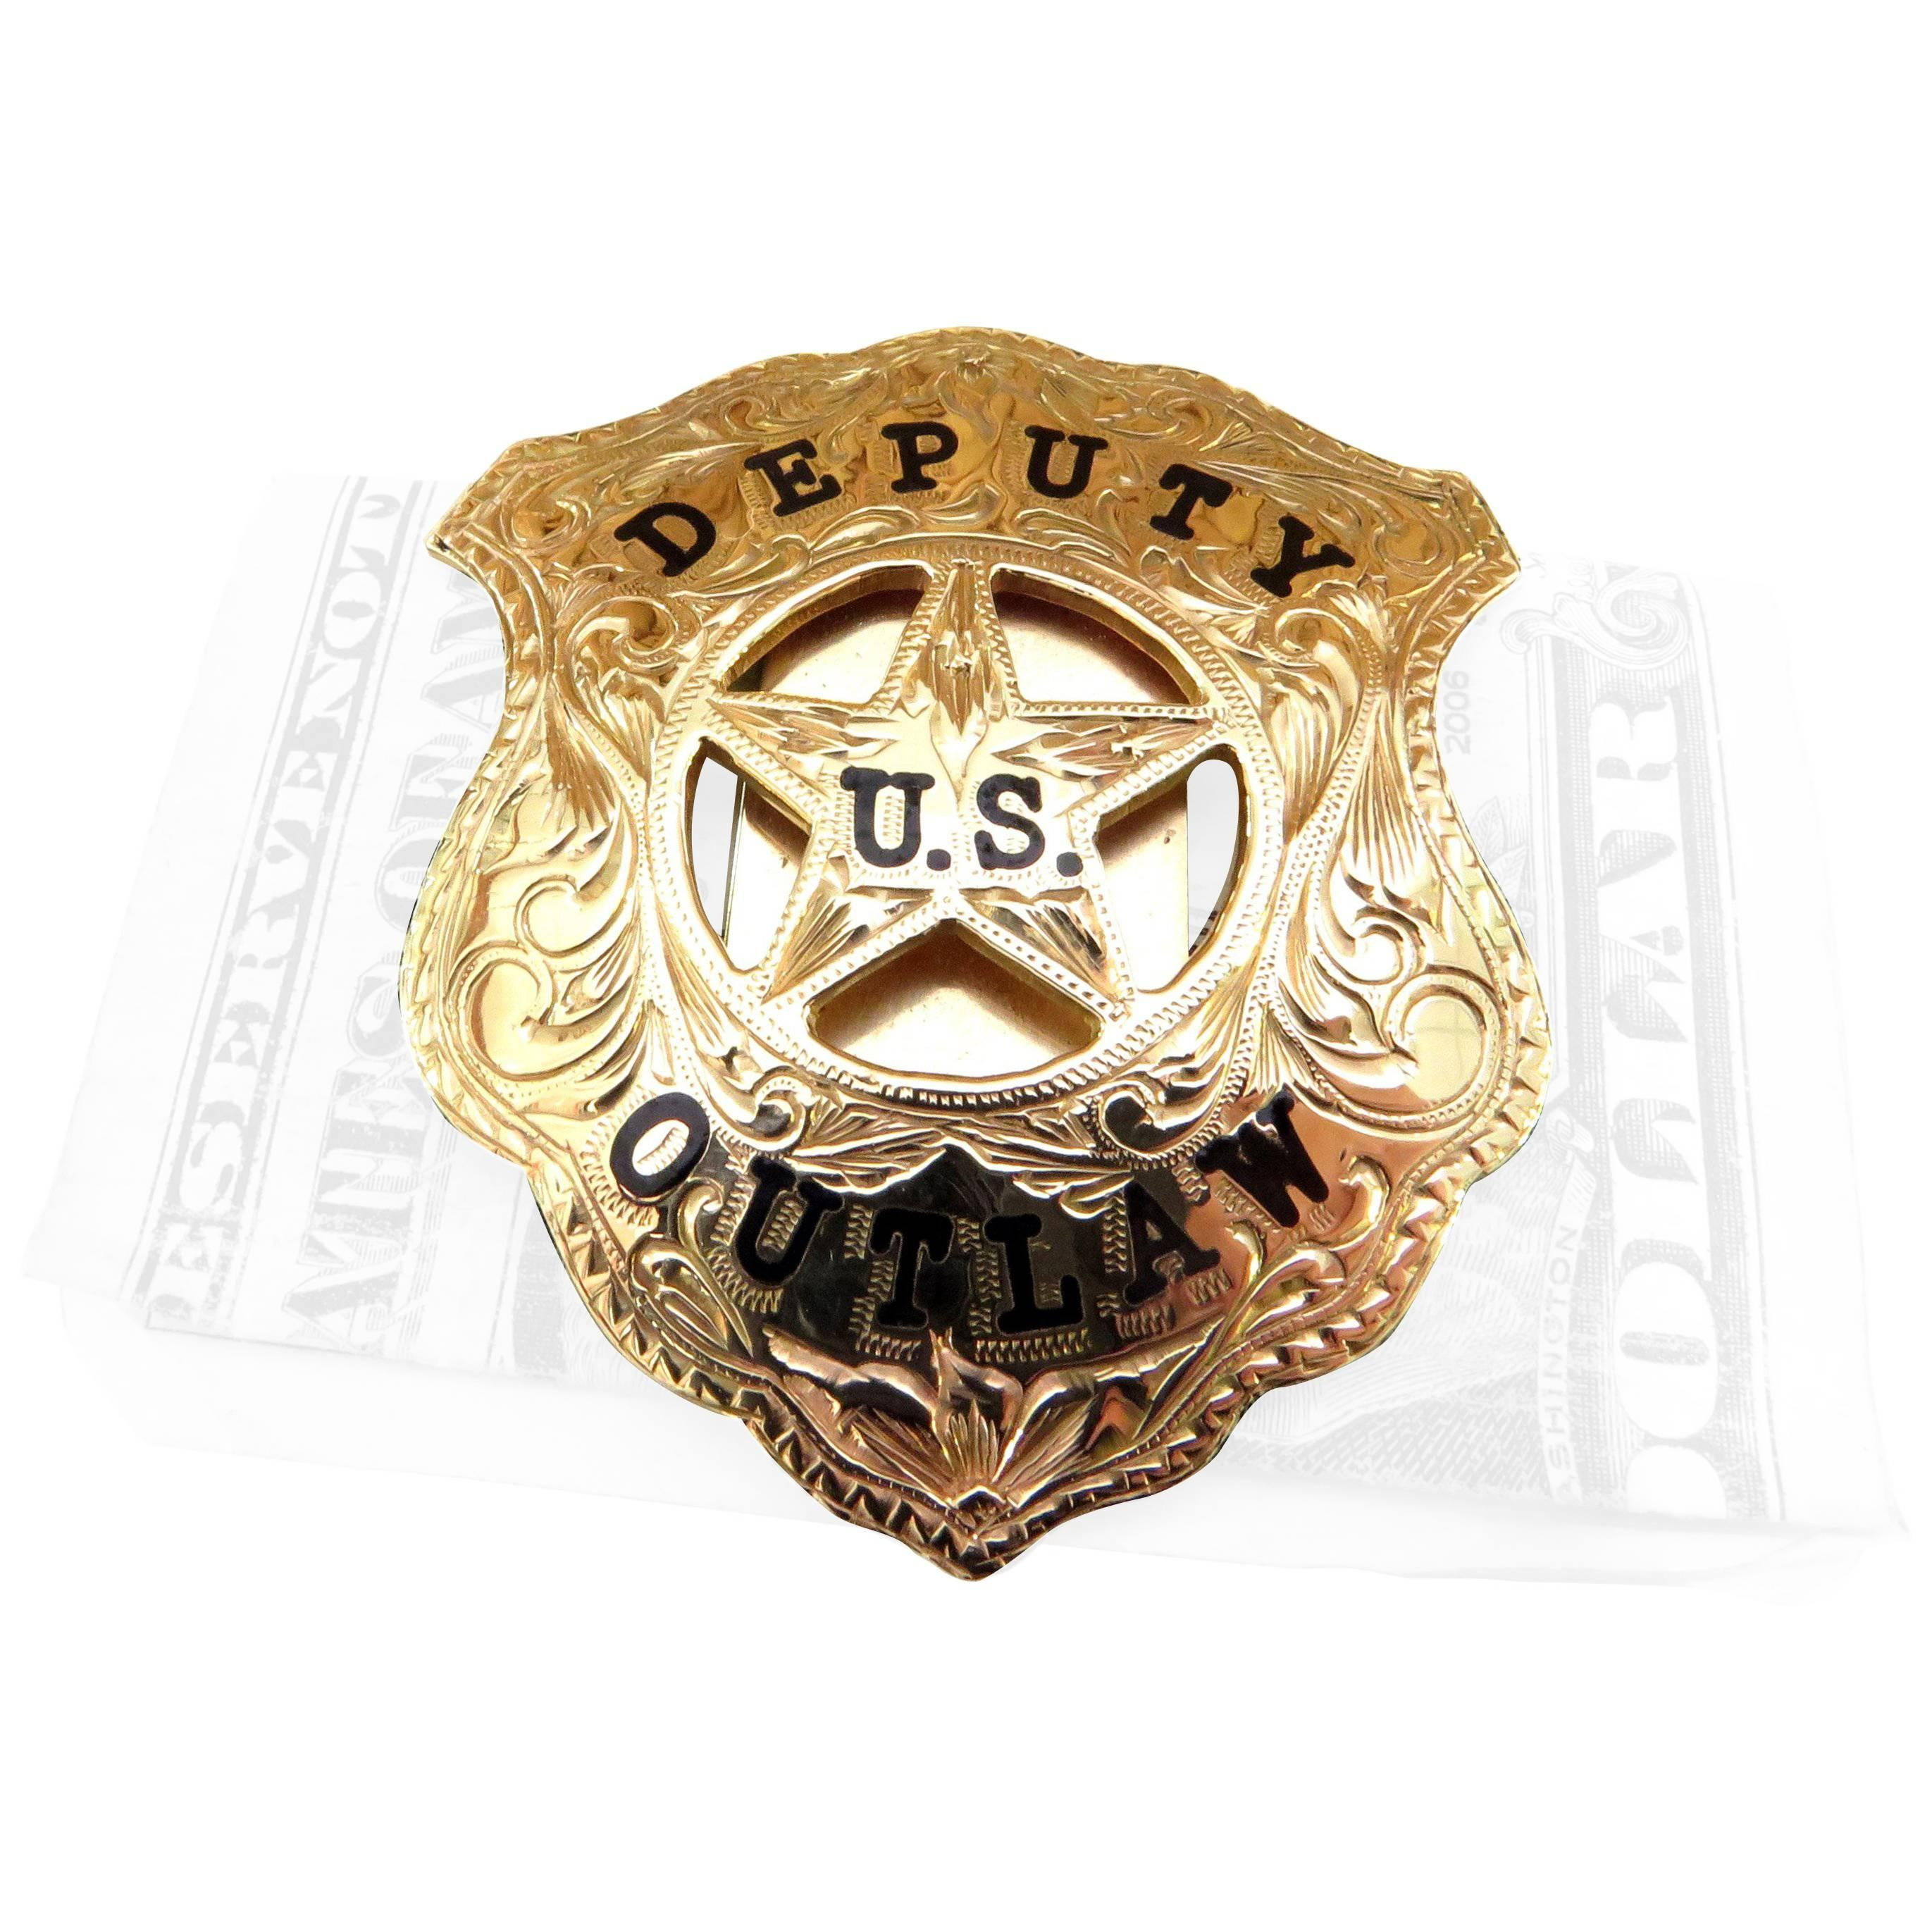 custom for phenomenal jewelry u outlaw id sale pendant org at watches j enamel clip badge police money s master deputy more us made gold